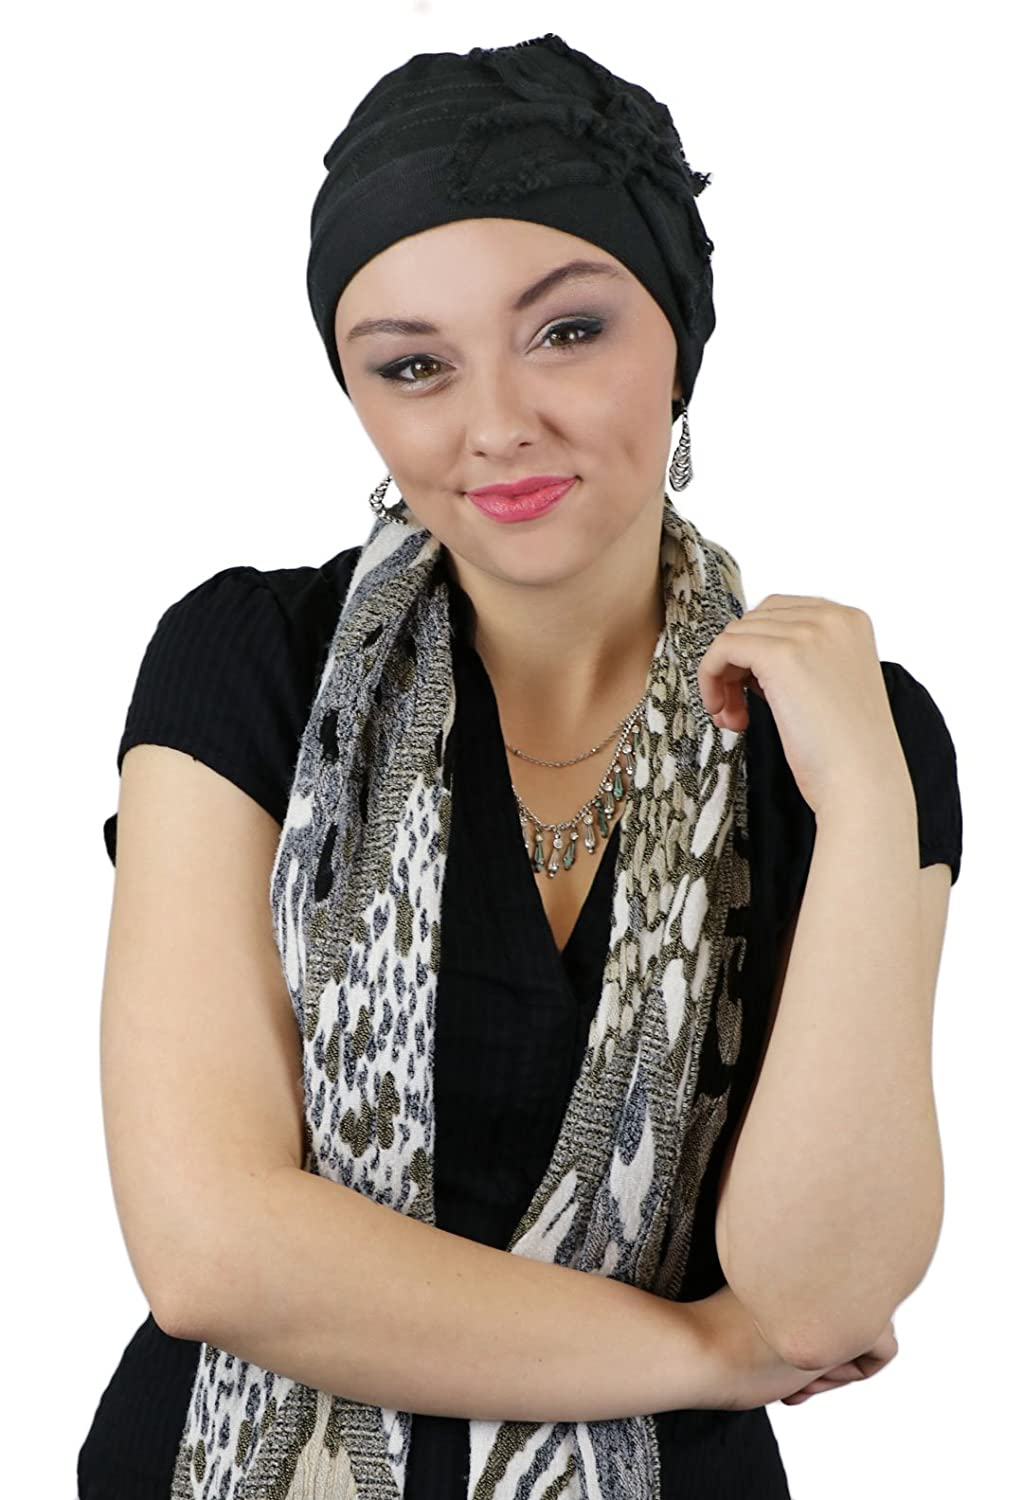 0a2ba0c5d Hats for Cancer Patients Women Chemo Headwear Head Coverings Parkhurst  Butterfly